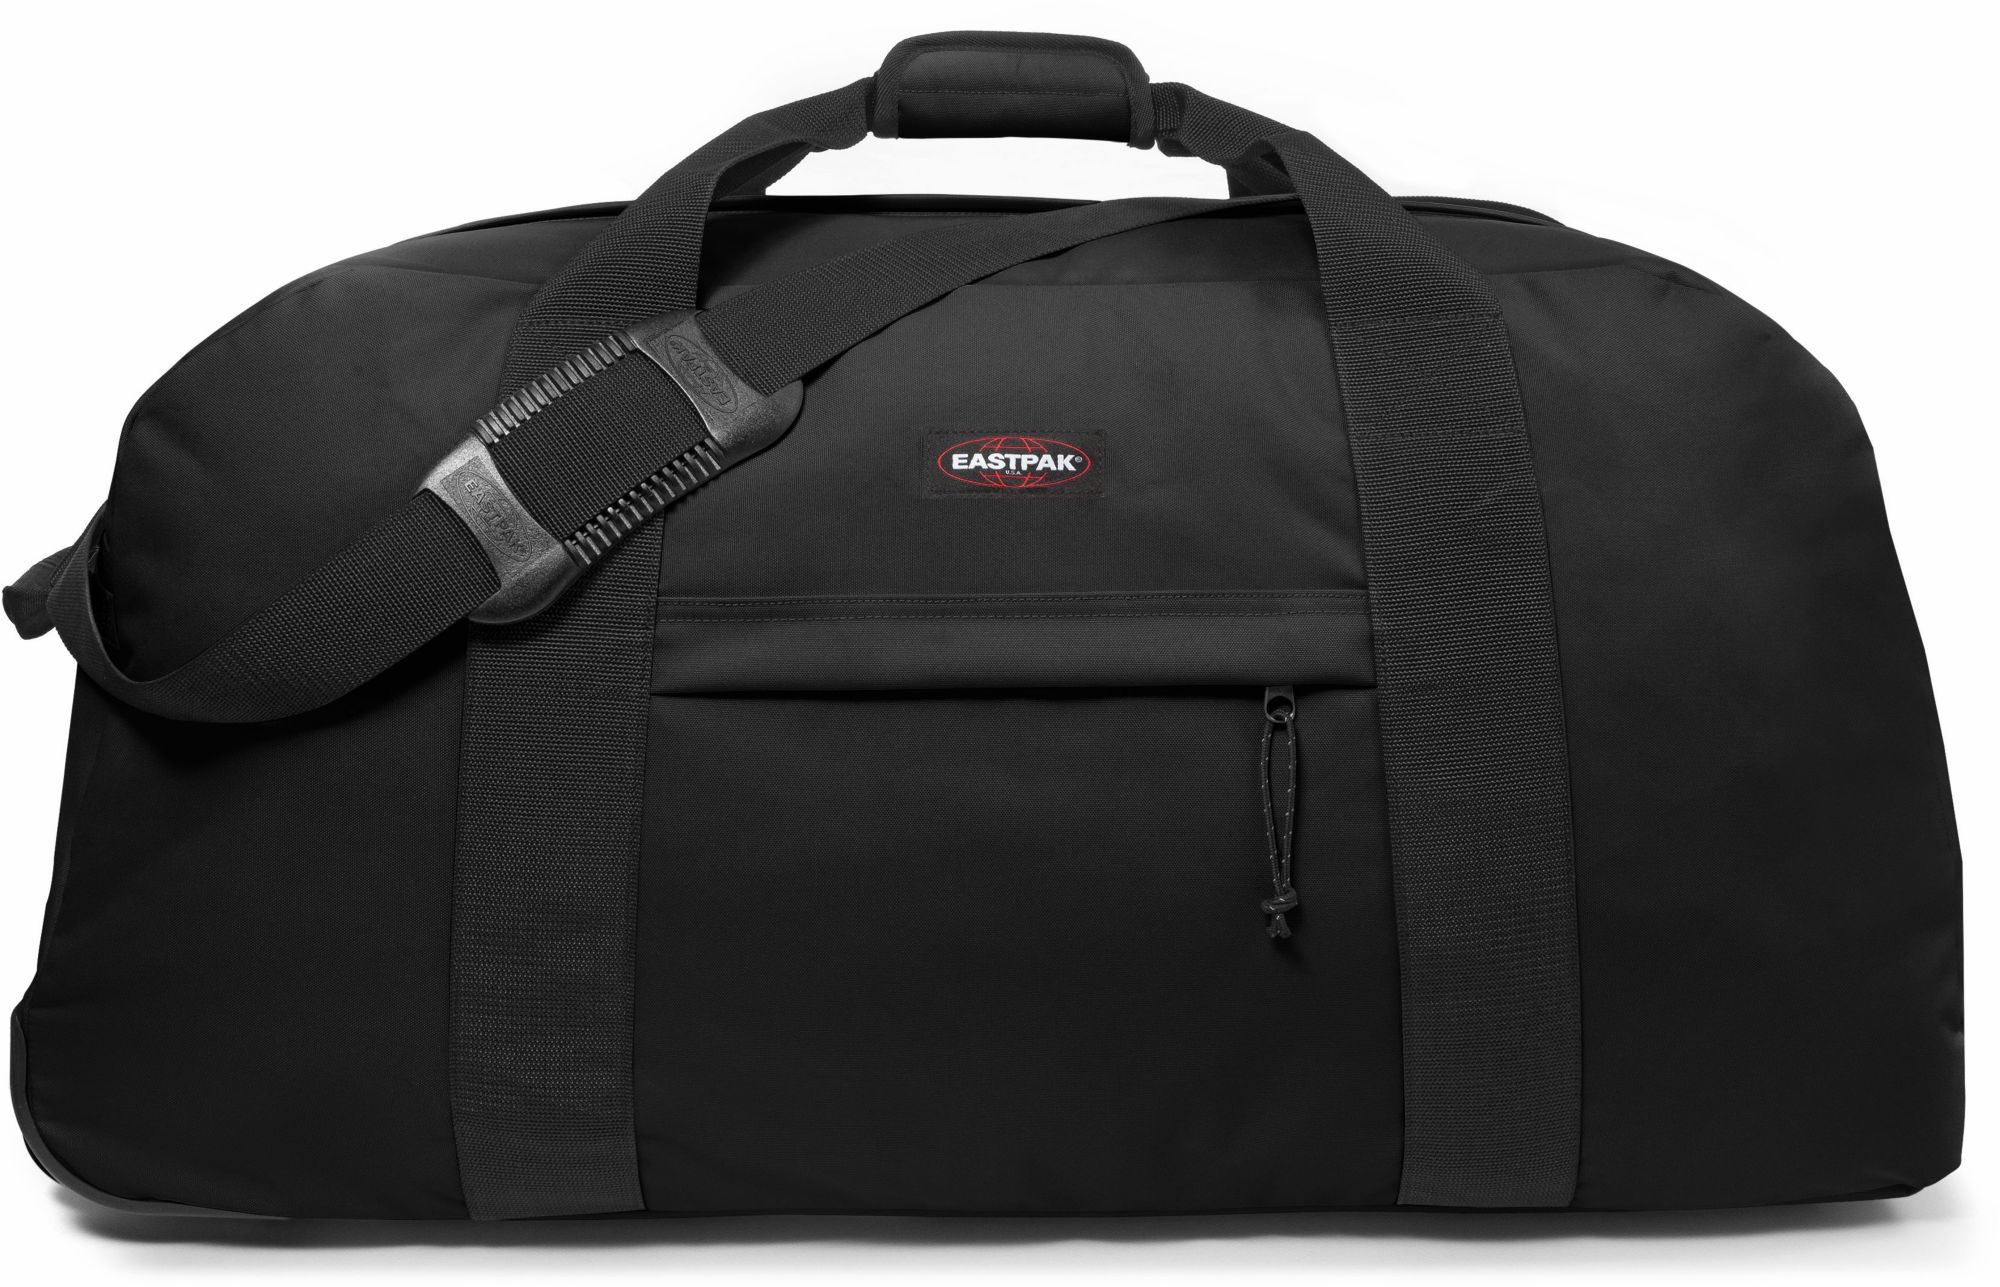 EASTPAK Eastpak Reisetasche, »WAREHOUSE black«